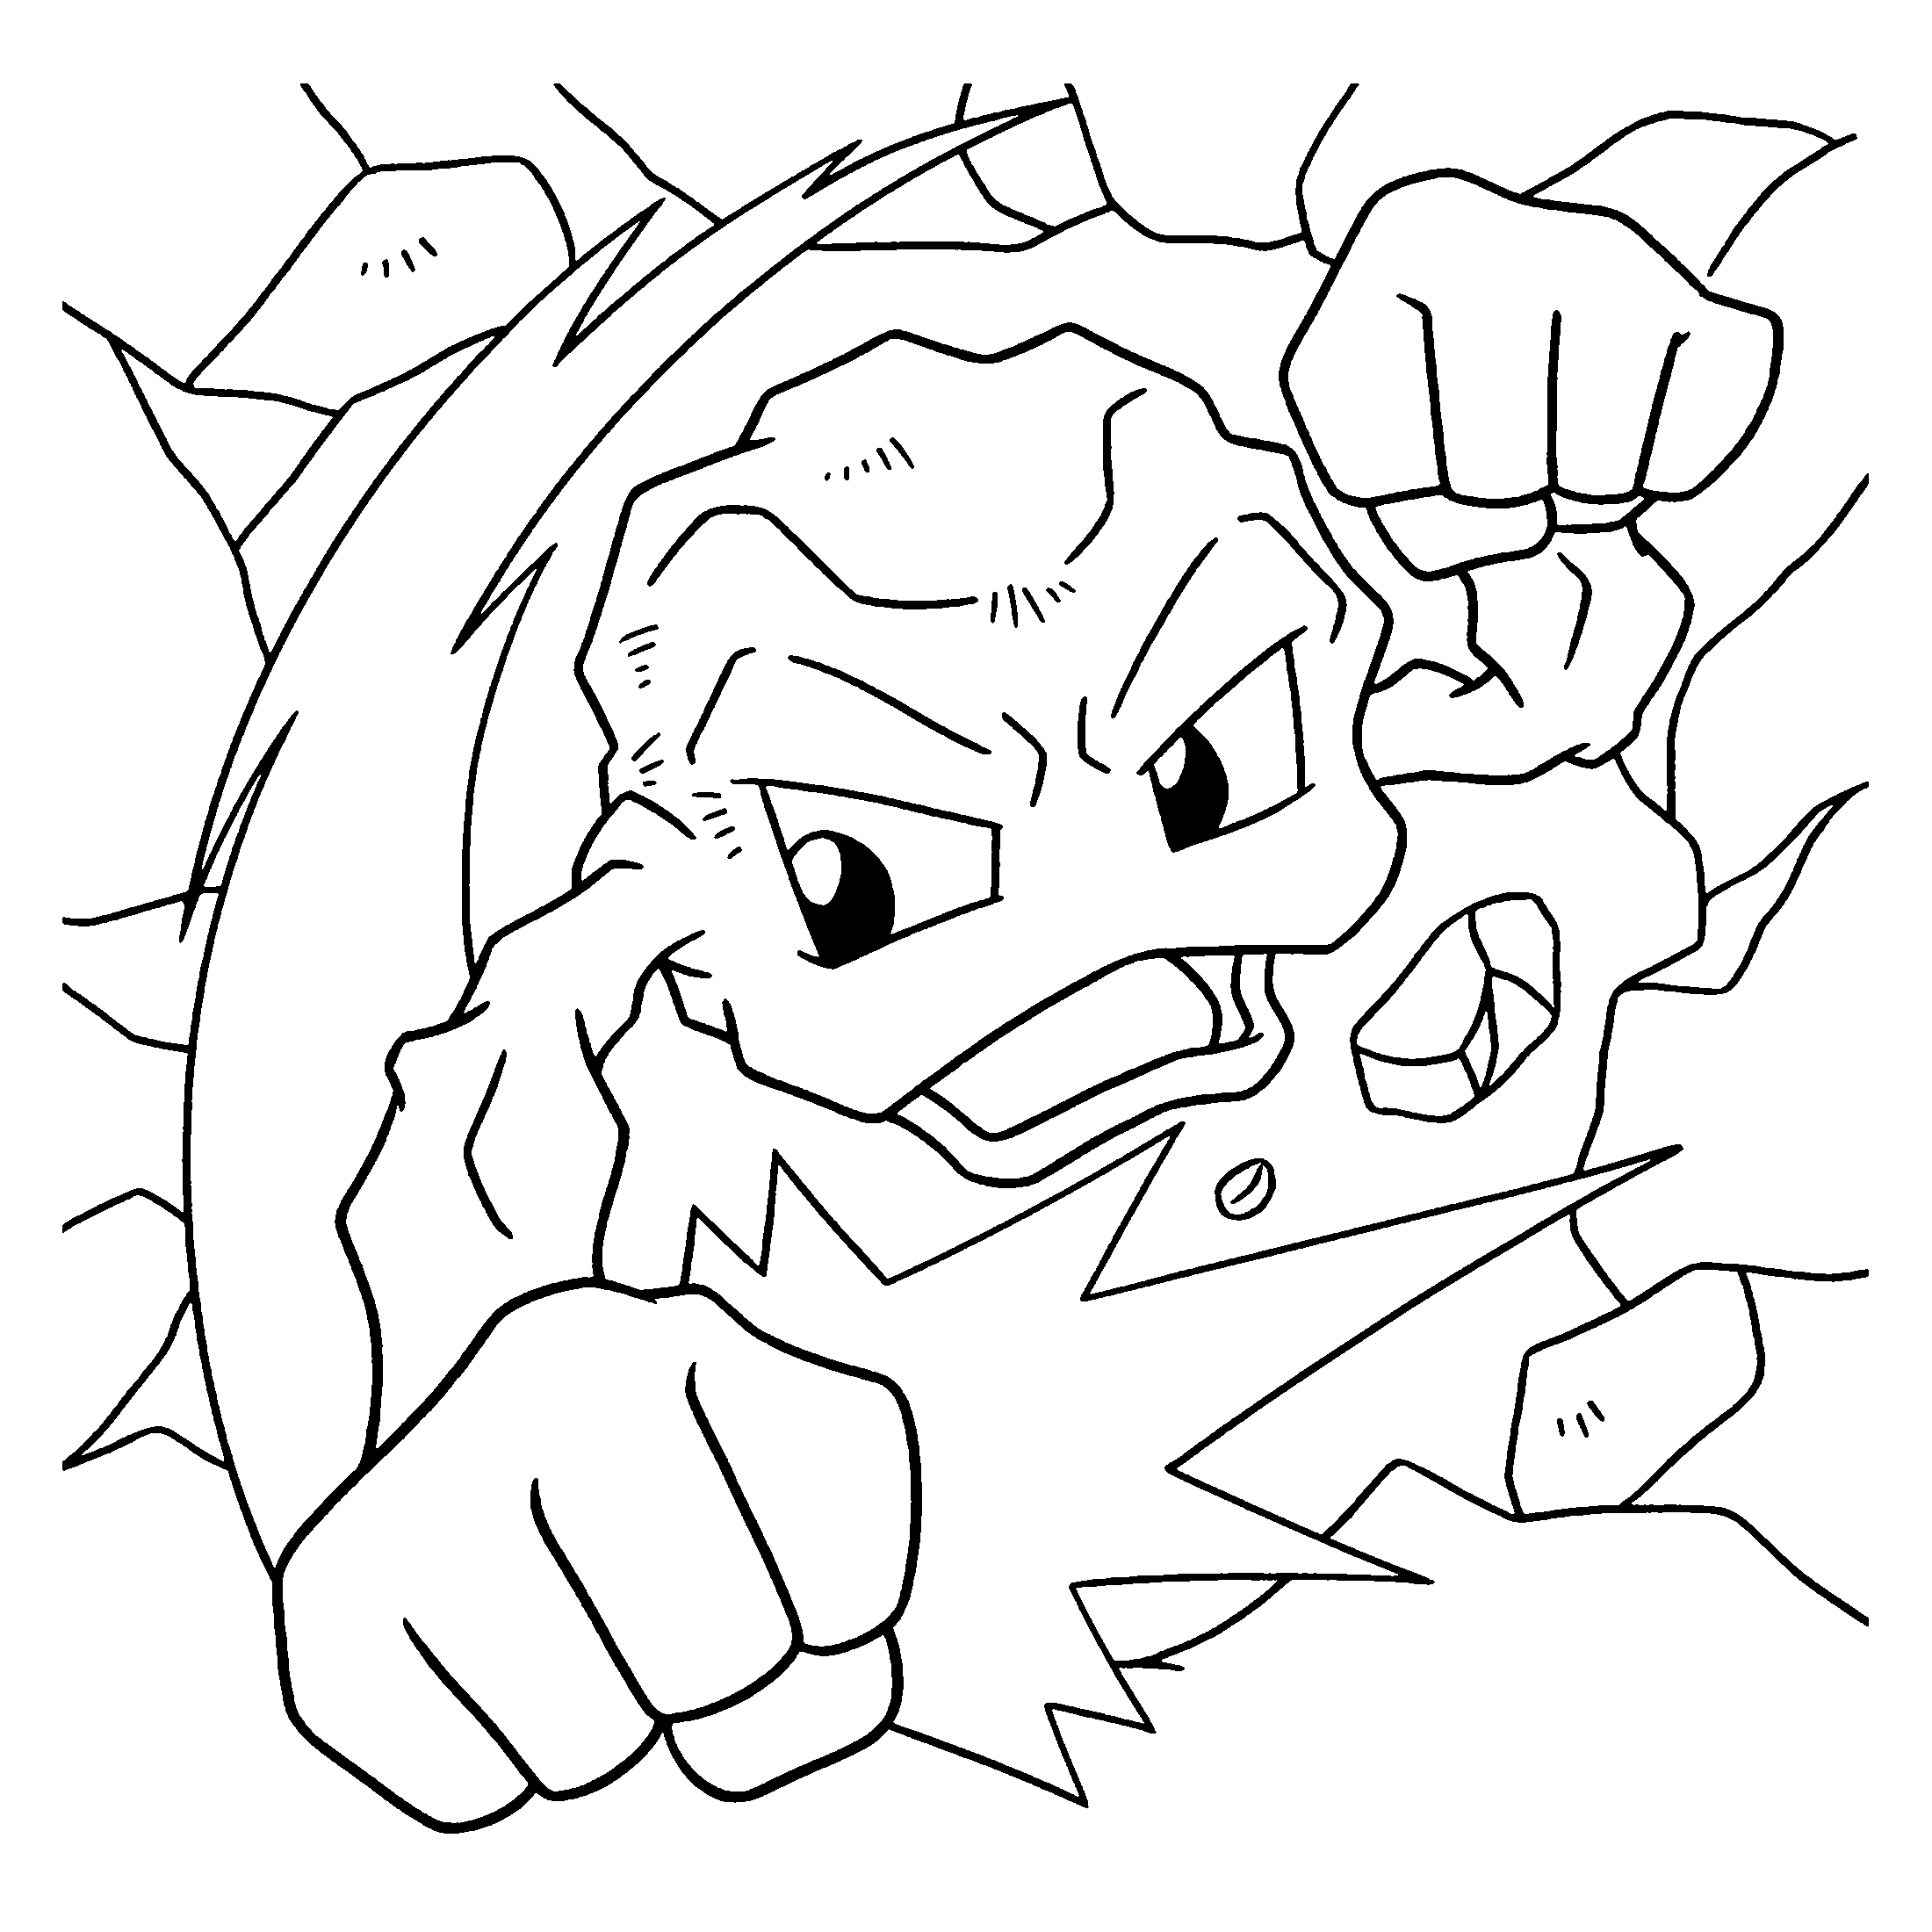 pakemon diamond pearl coloring pages - photo#43